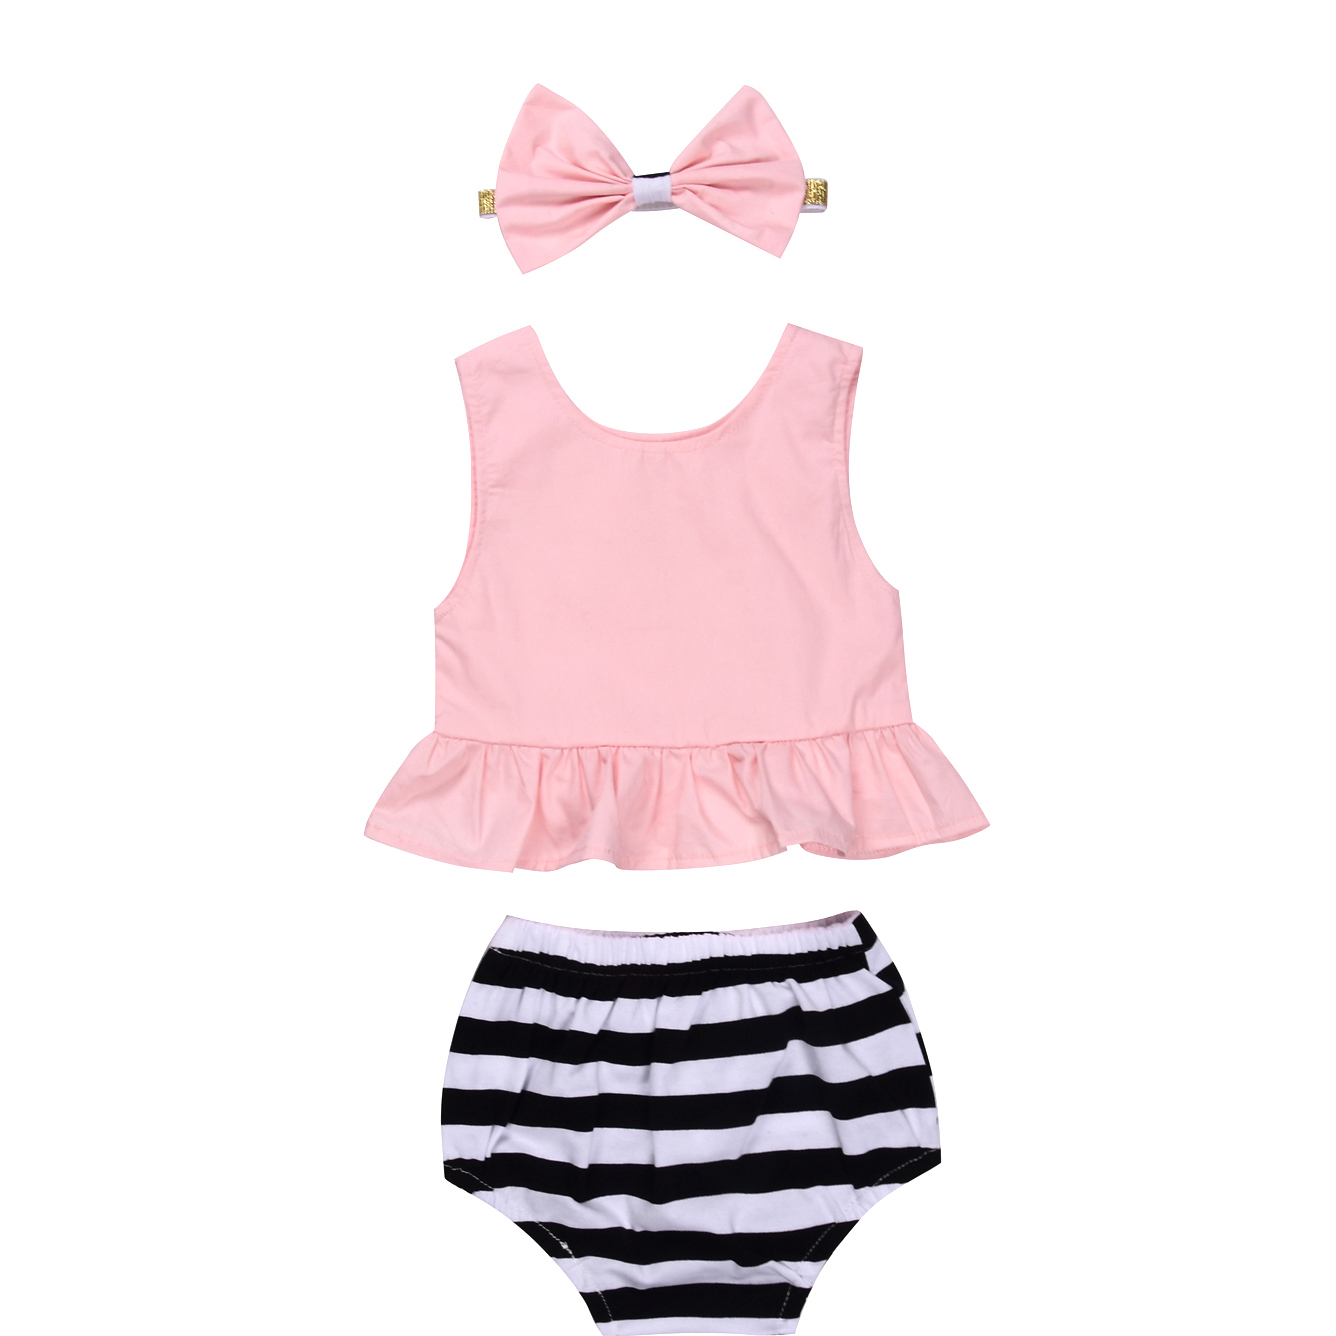 2017 Summer Cute Newborn Baby Girls Clothing Set Pink Ruffles Tank Tops+Stripped Baby Bloomers Shorts 2PCS Outfits Children Set 0 24m floral baby girl clothes set 2017 summer sleeveless ruffles crop tops baby bloomers shorts 2pcs outfits children sunsuit